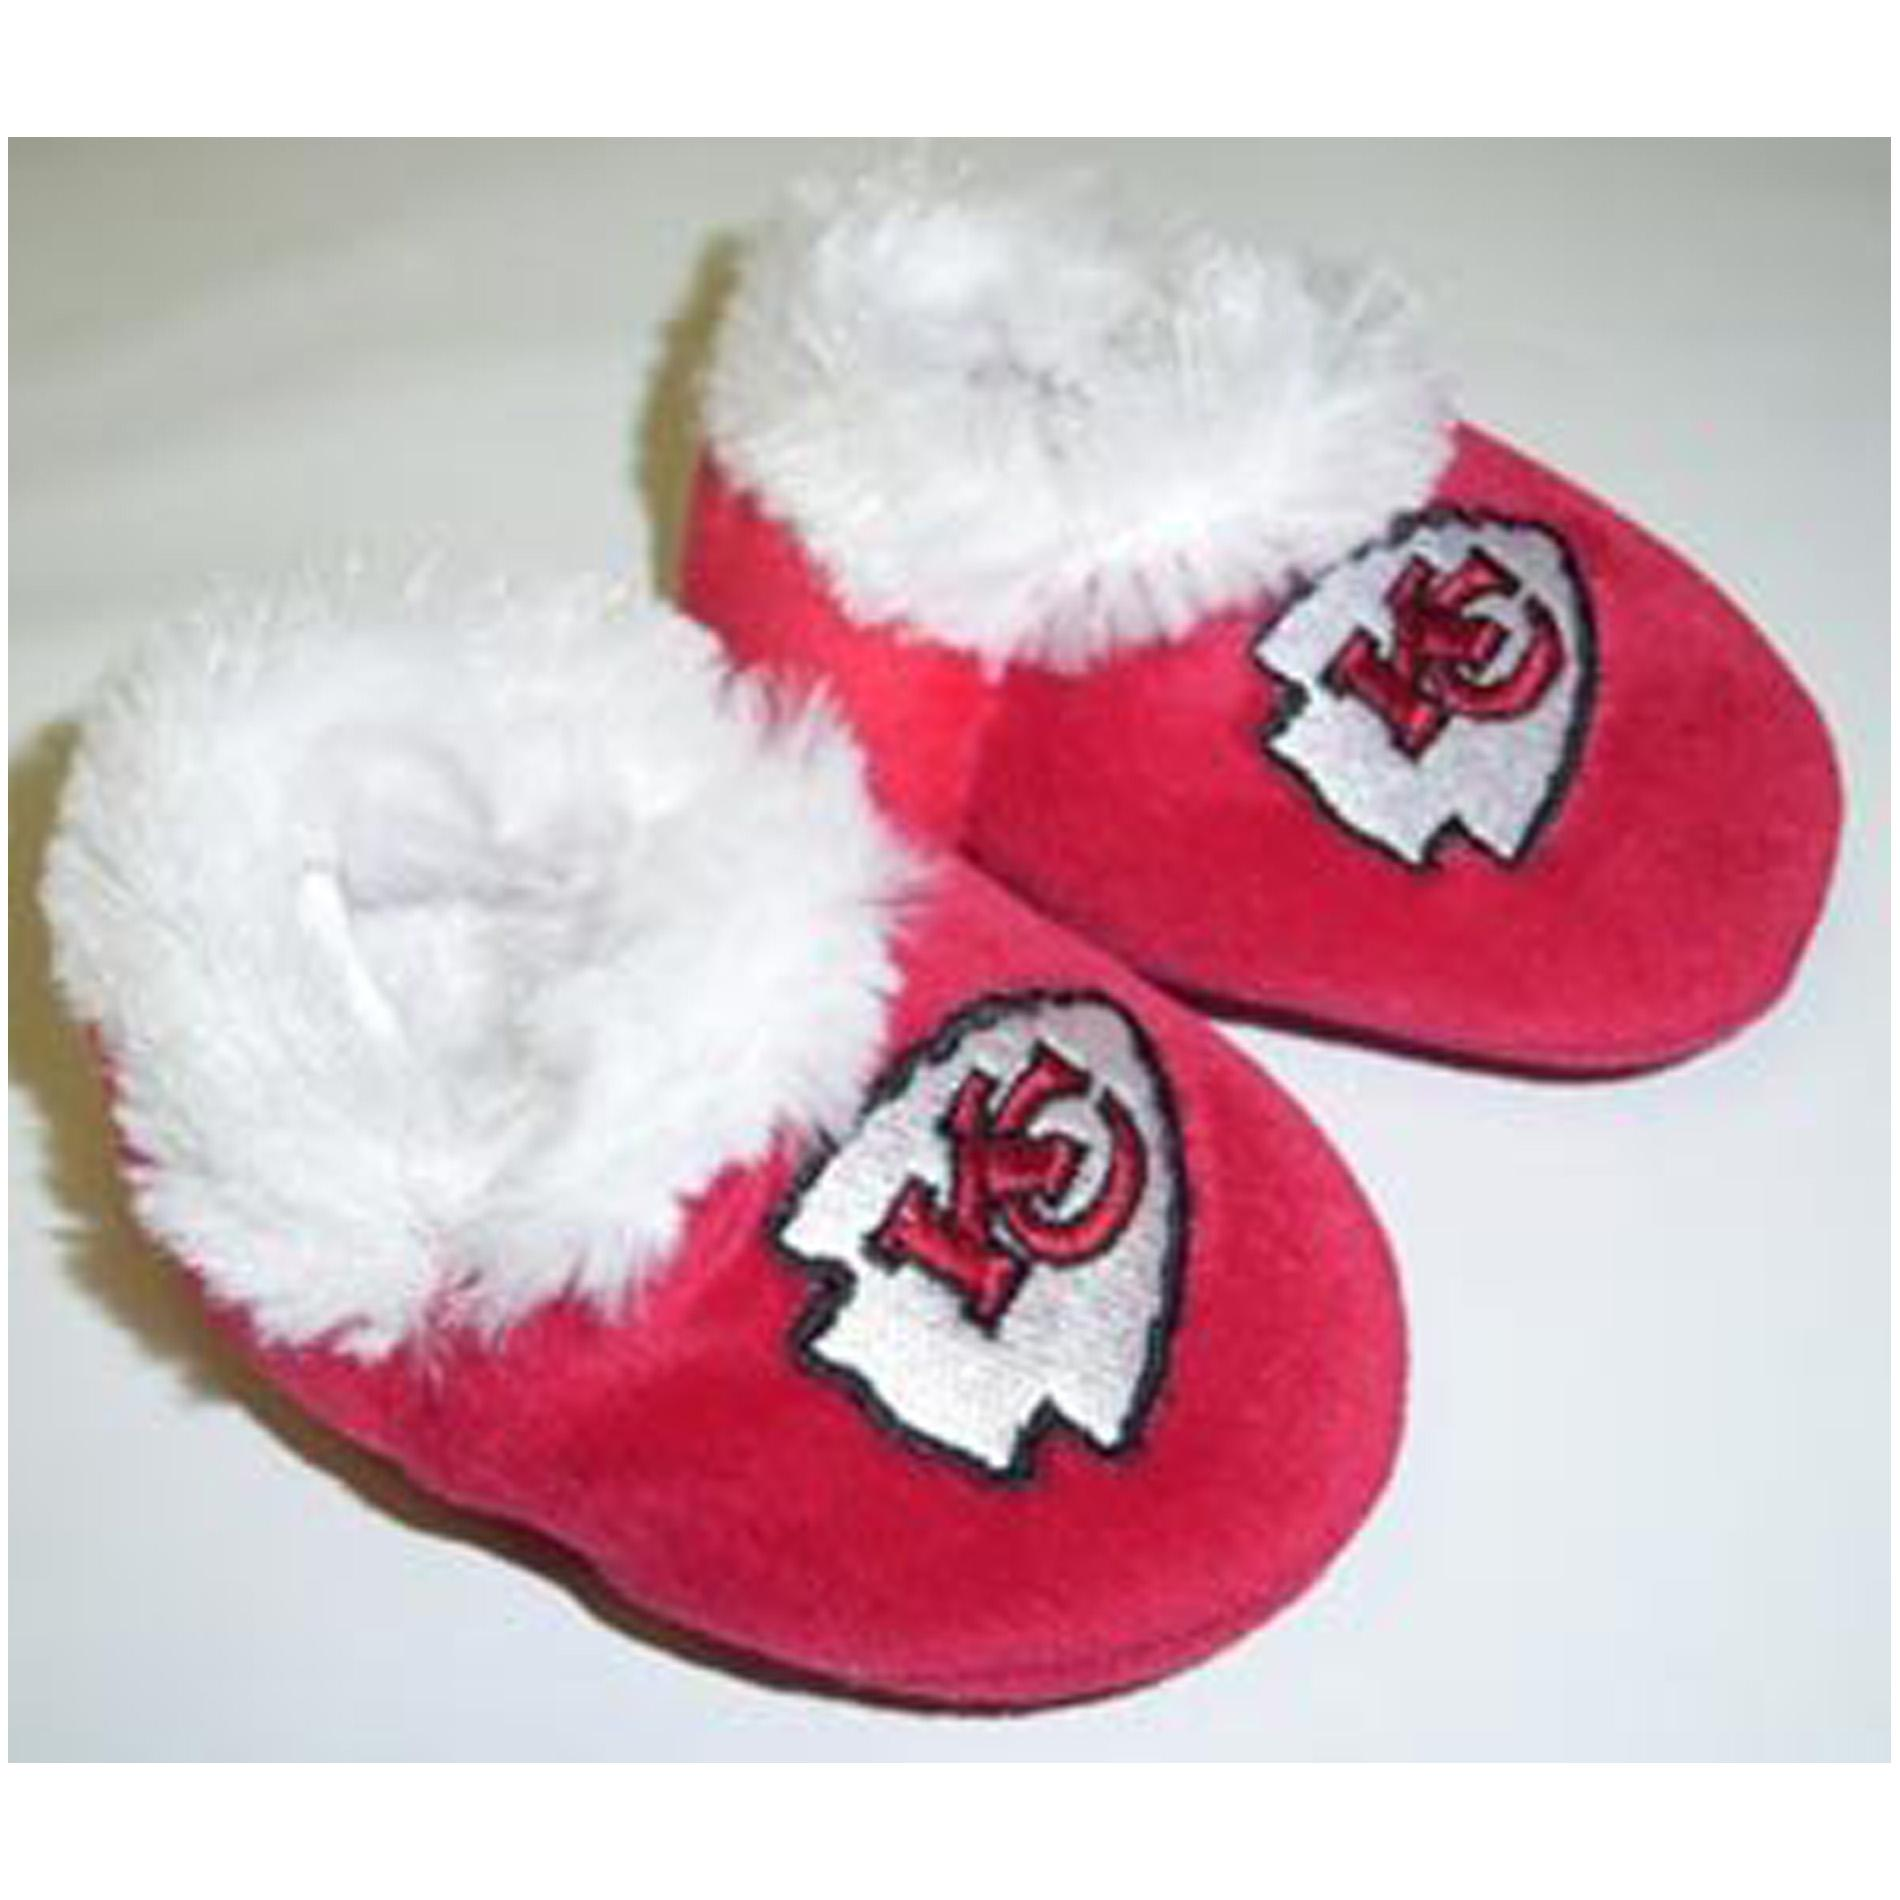 Kansas City Chiefs Baby Bootie Slippers